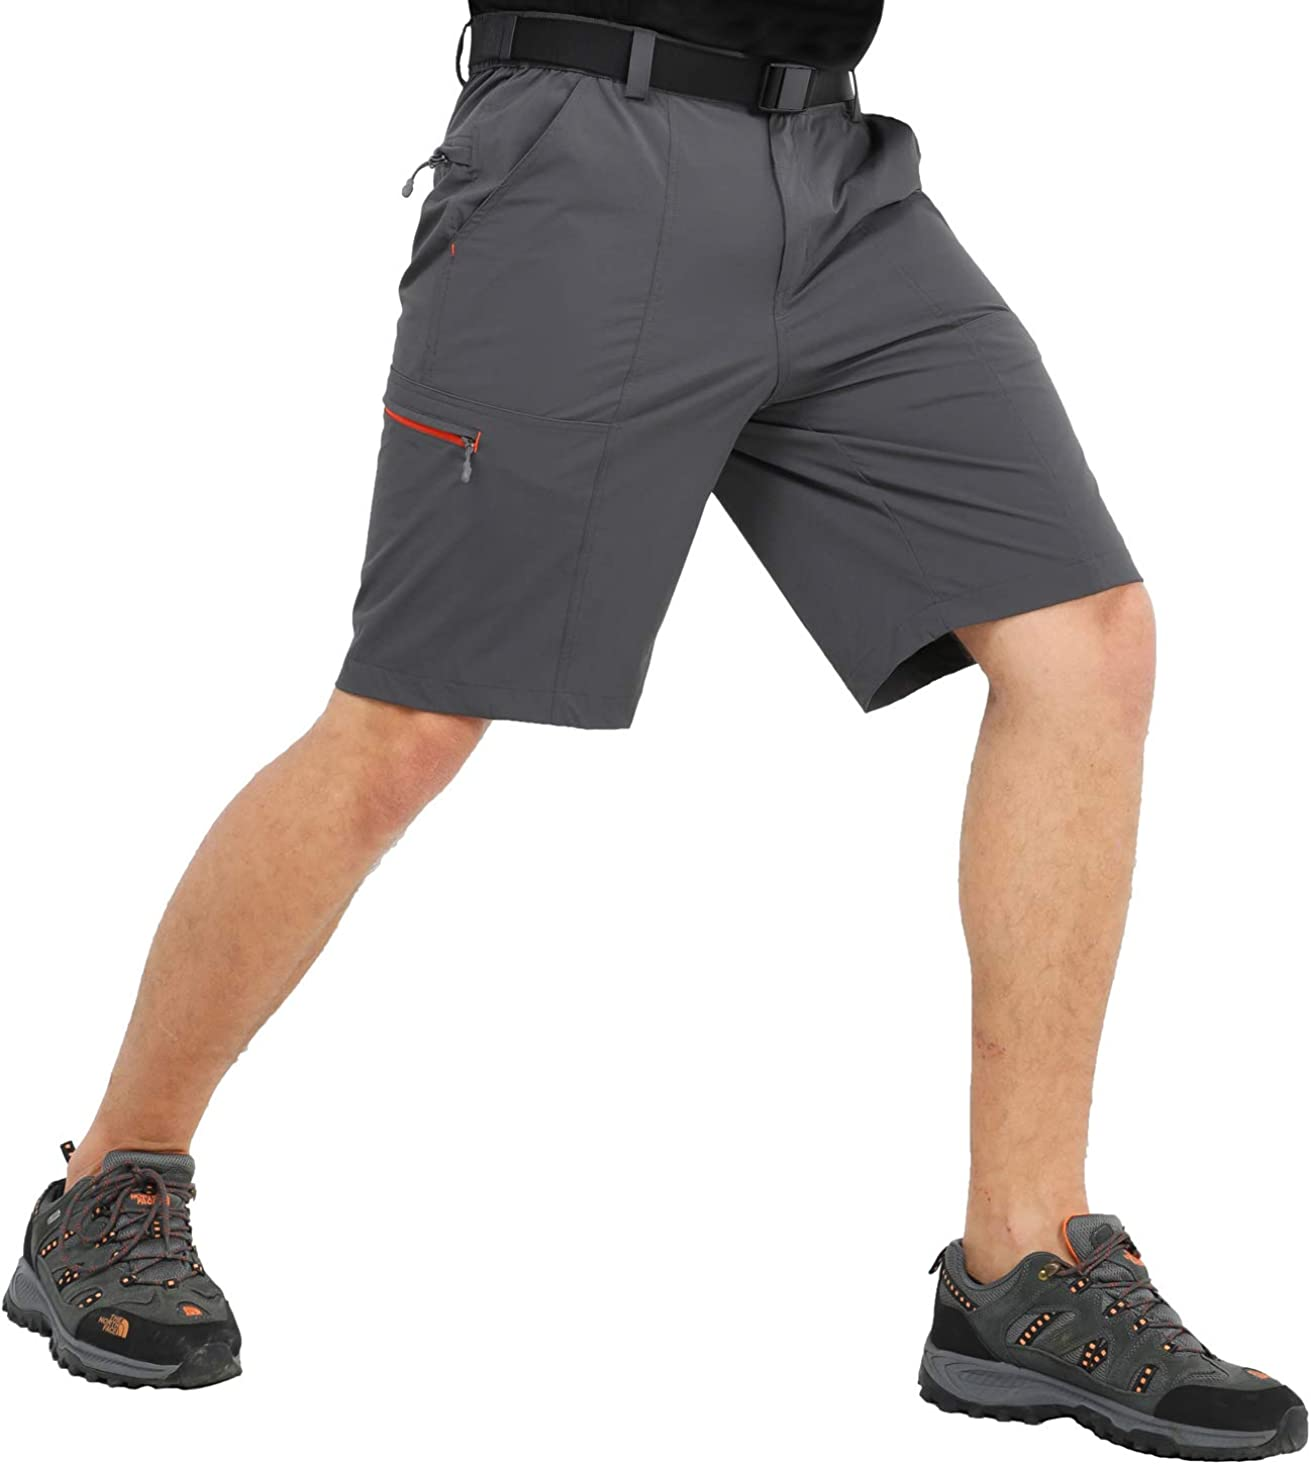 MIER Men's Hiking Cargo Shorts Quick Dry Outdoor Nylon Short with 6 Pockets, Water Resistant